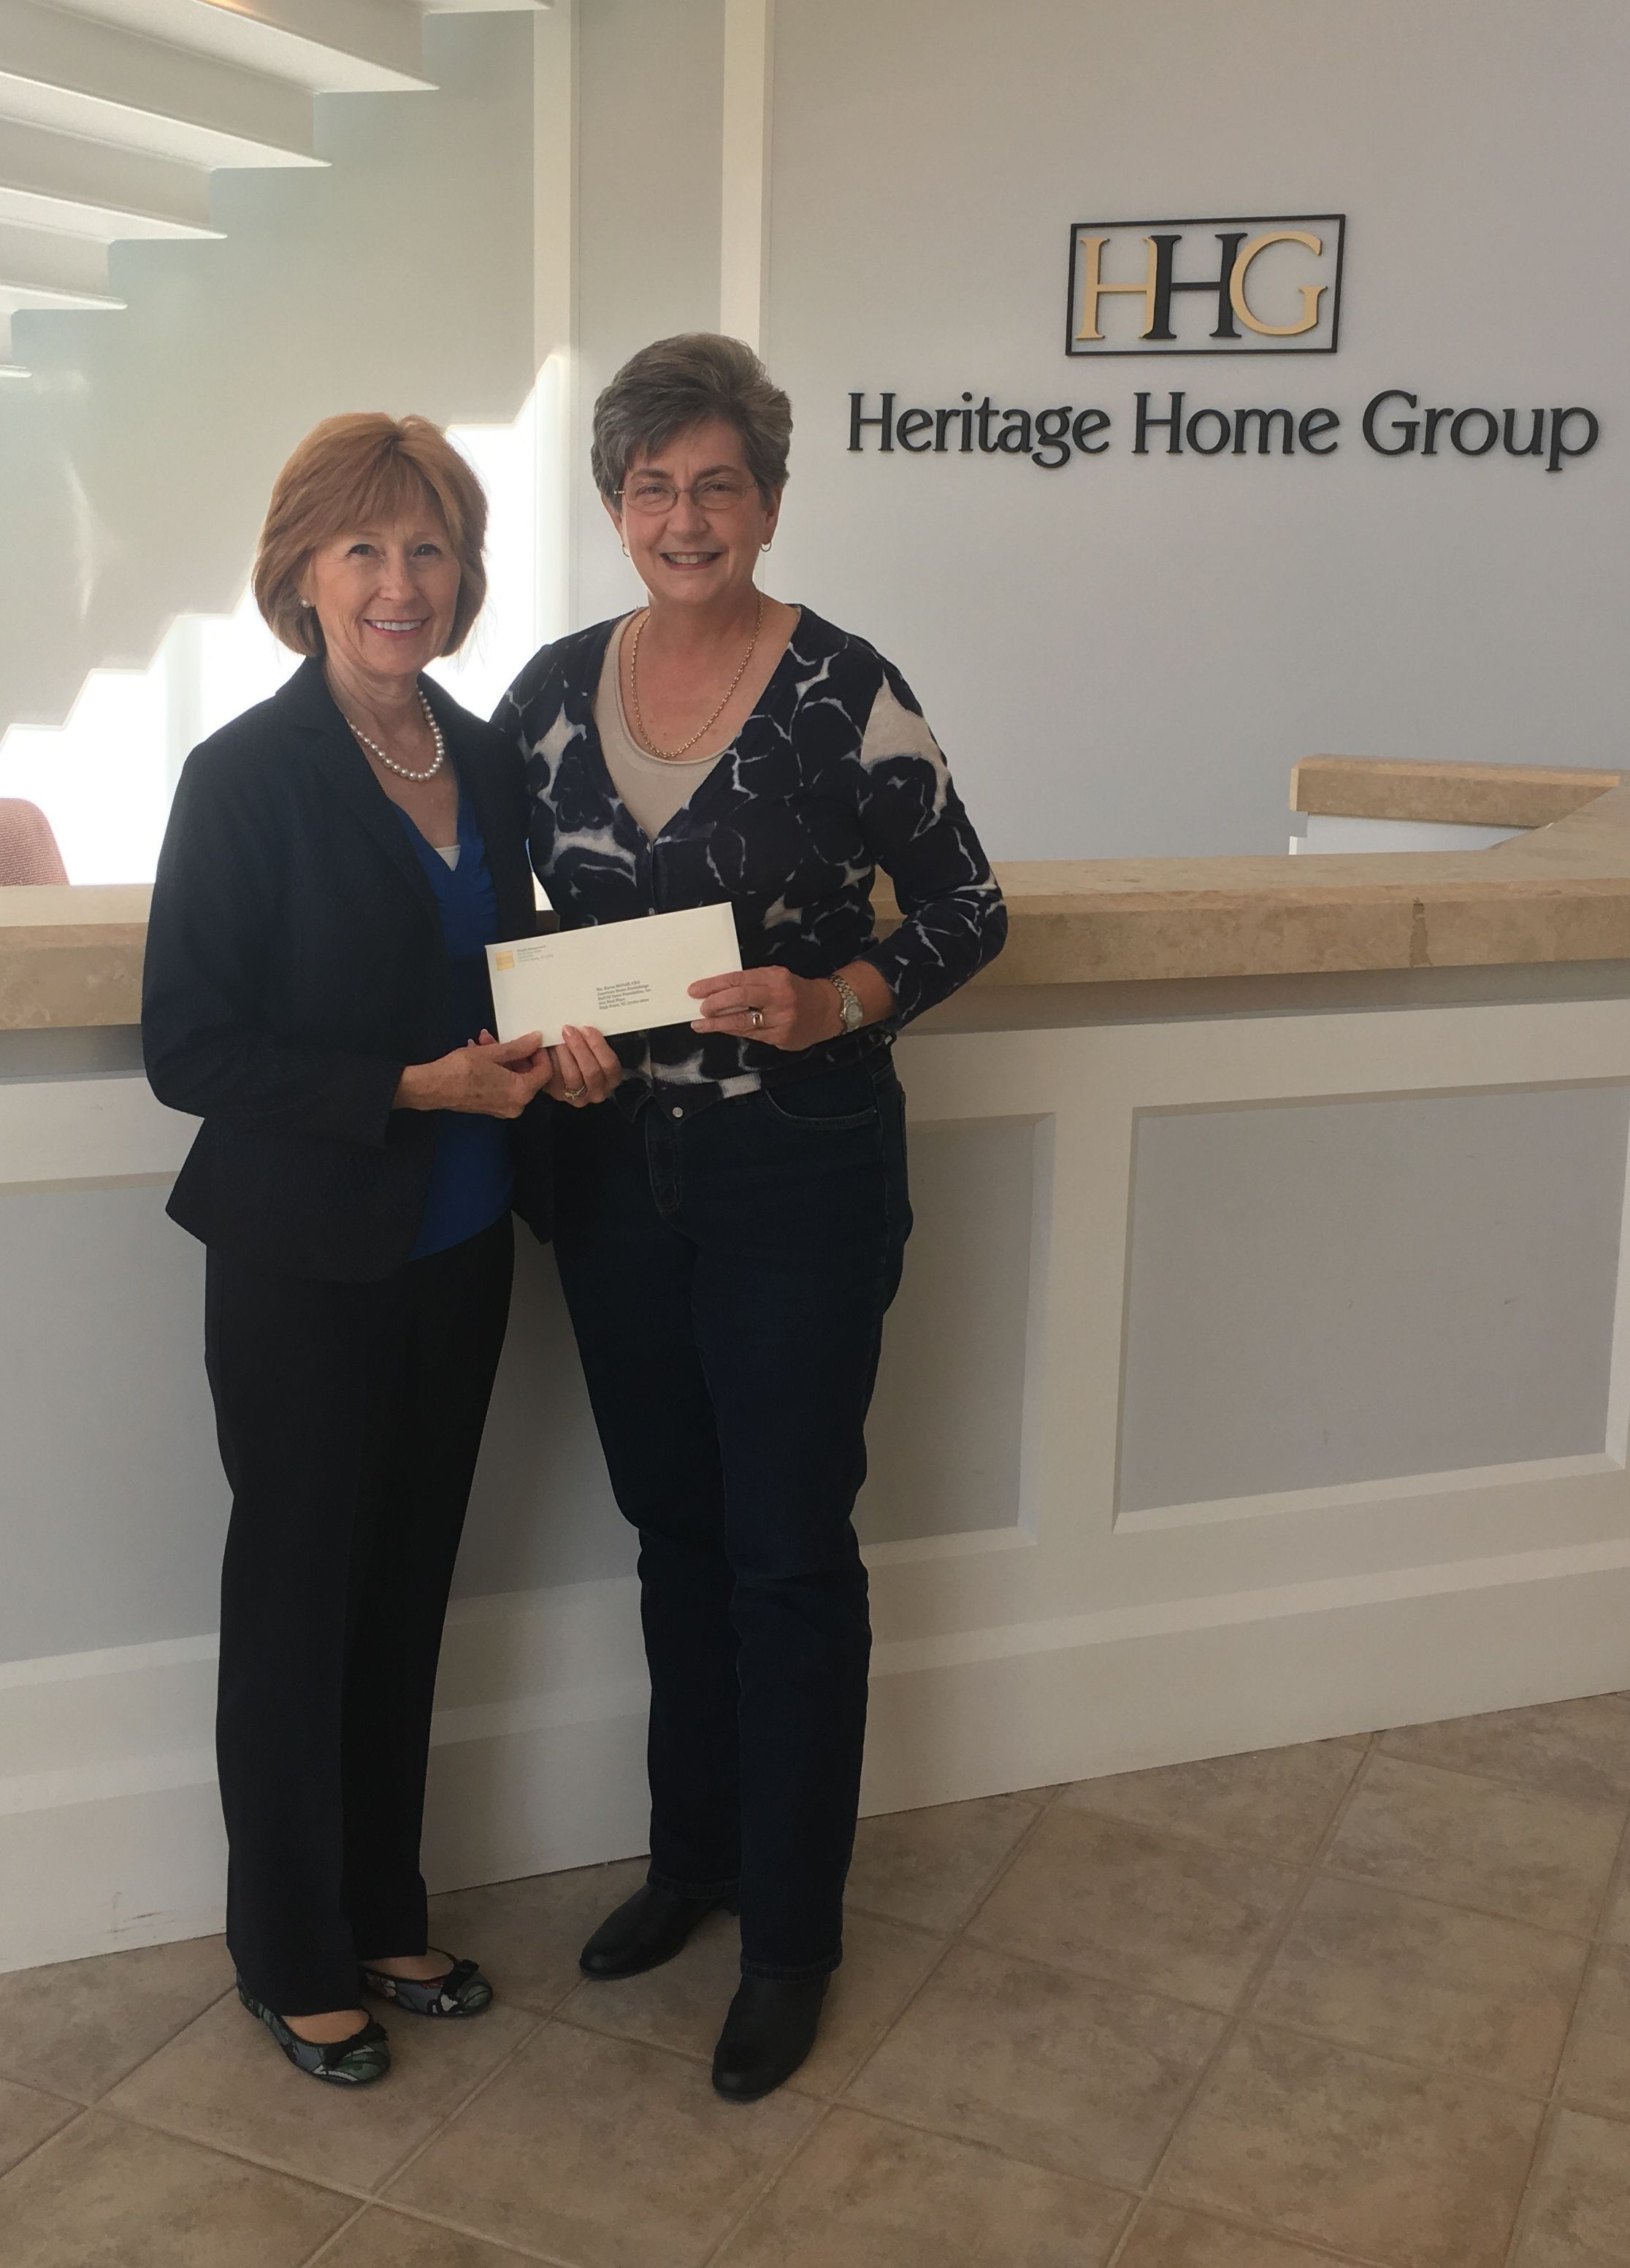 Karen McNeill, CEO of the American Home Furnishings Hall of Fame Foundation, receives donation for the Heritage Project from Laura Holland, vice president of marketing and communications of the Heritage Home Group.